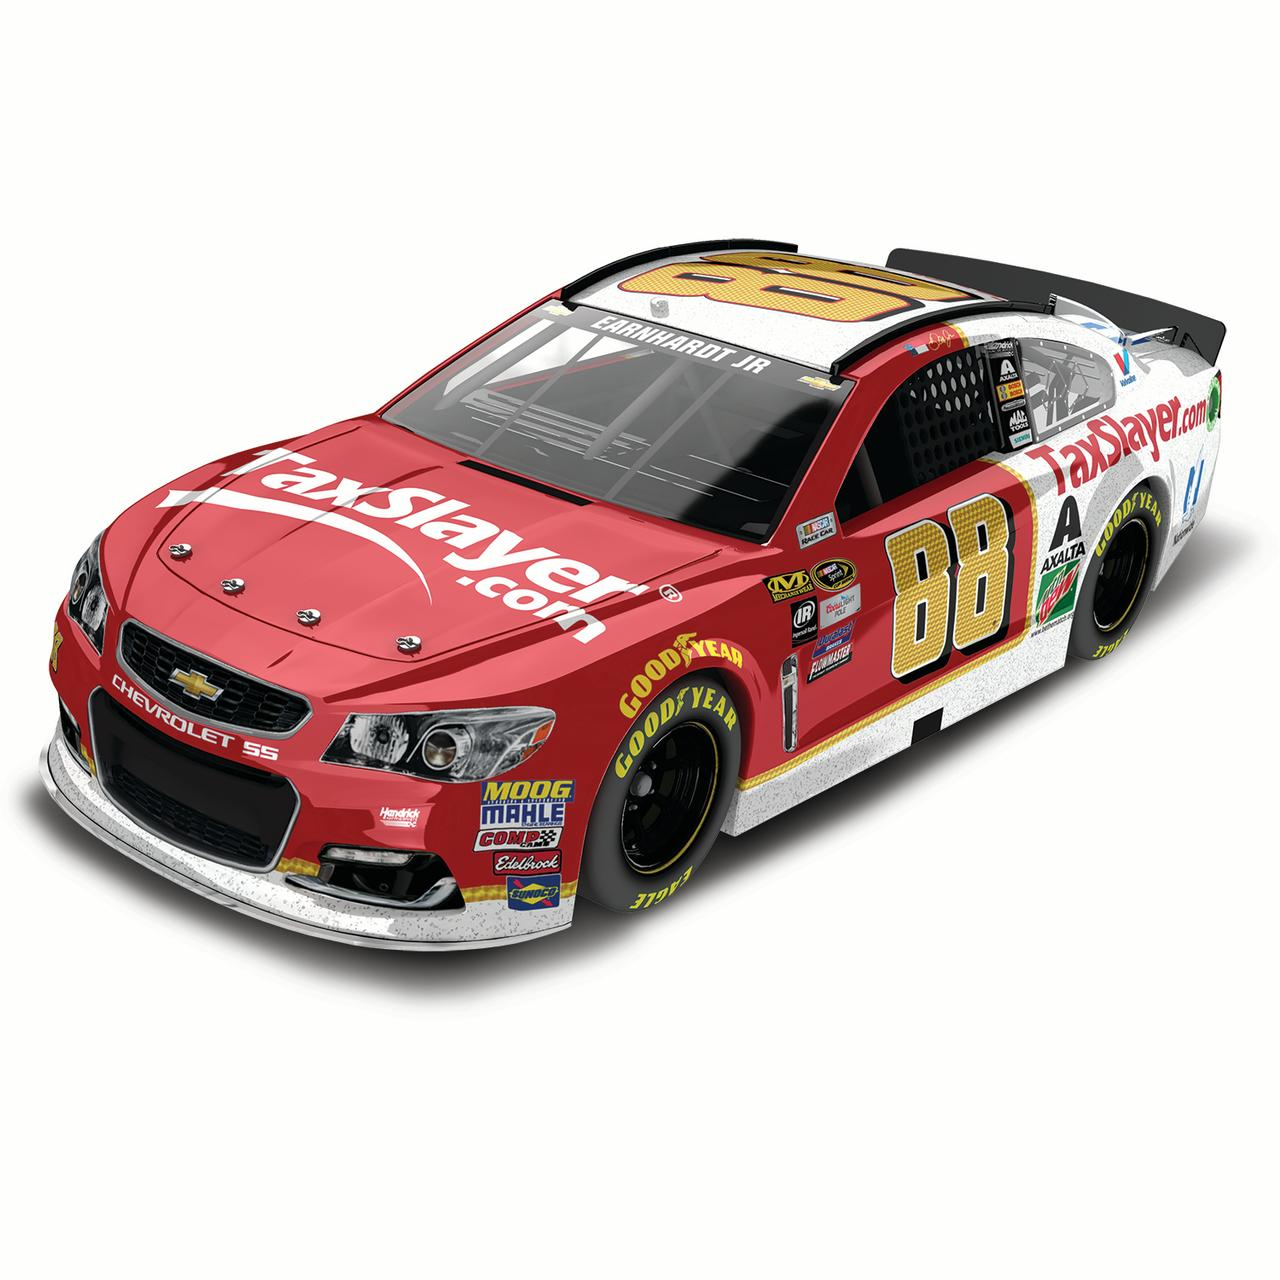 Dale Earnhardt Jr. Action Racing 2016 #88 TaxSlayer 1:24 Nascar Sprint Cup Series Galaxy... by Lionel LLC